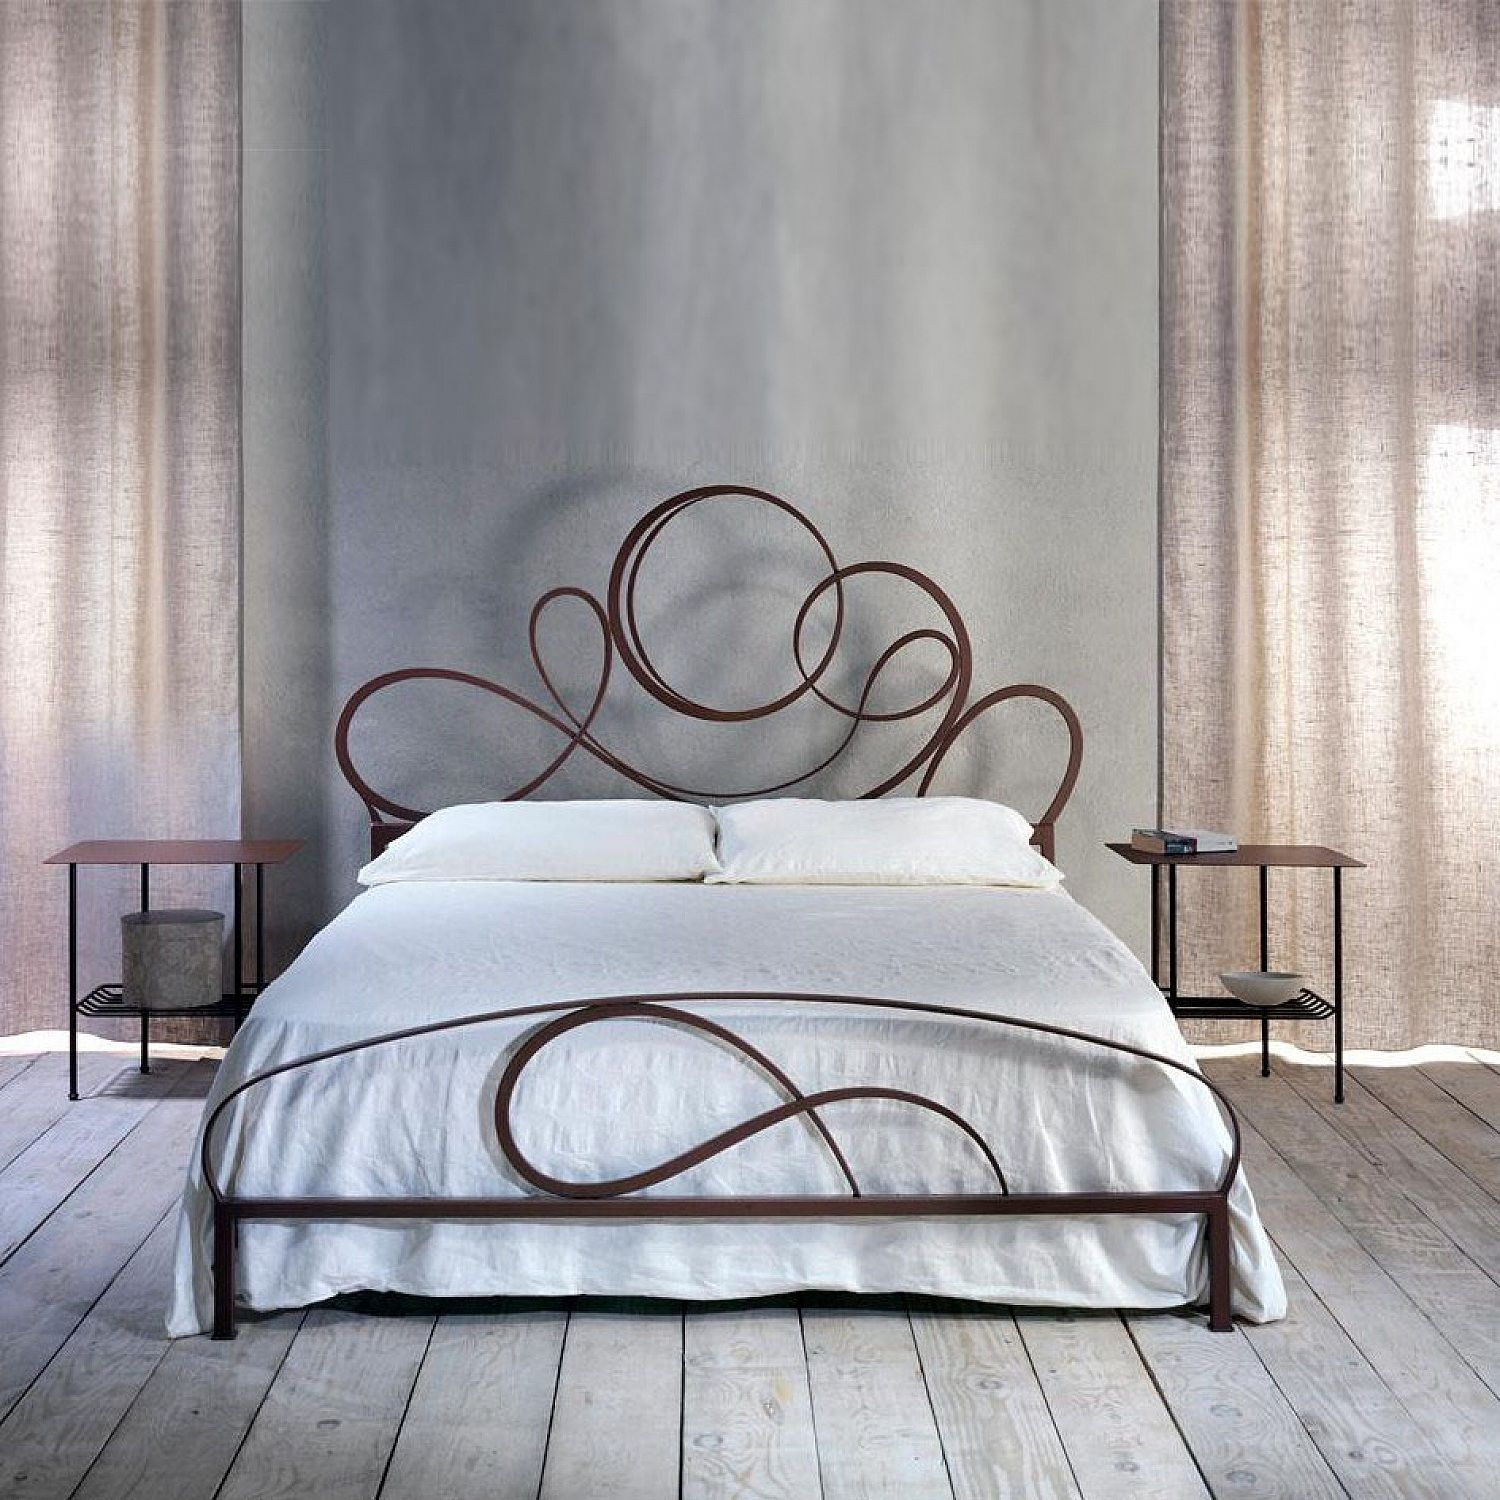 Pin By Devi Soedjono On Remodel Wrought Iron Beds Iron Bed Iron Bed Frame